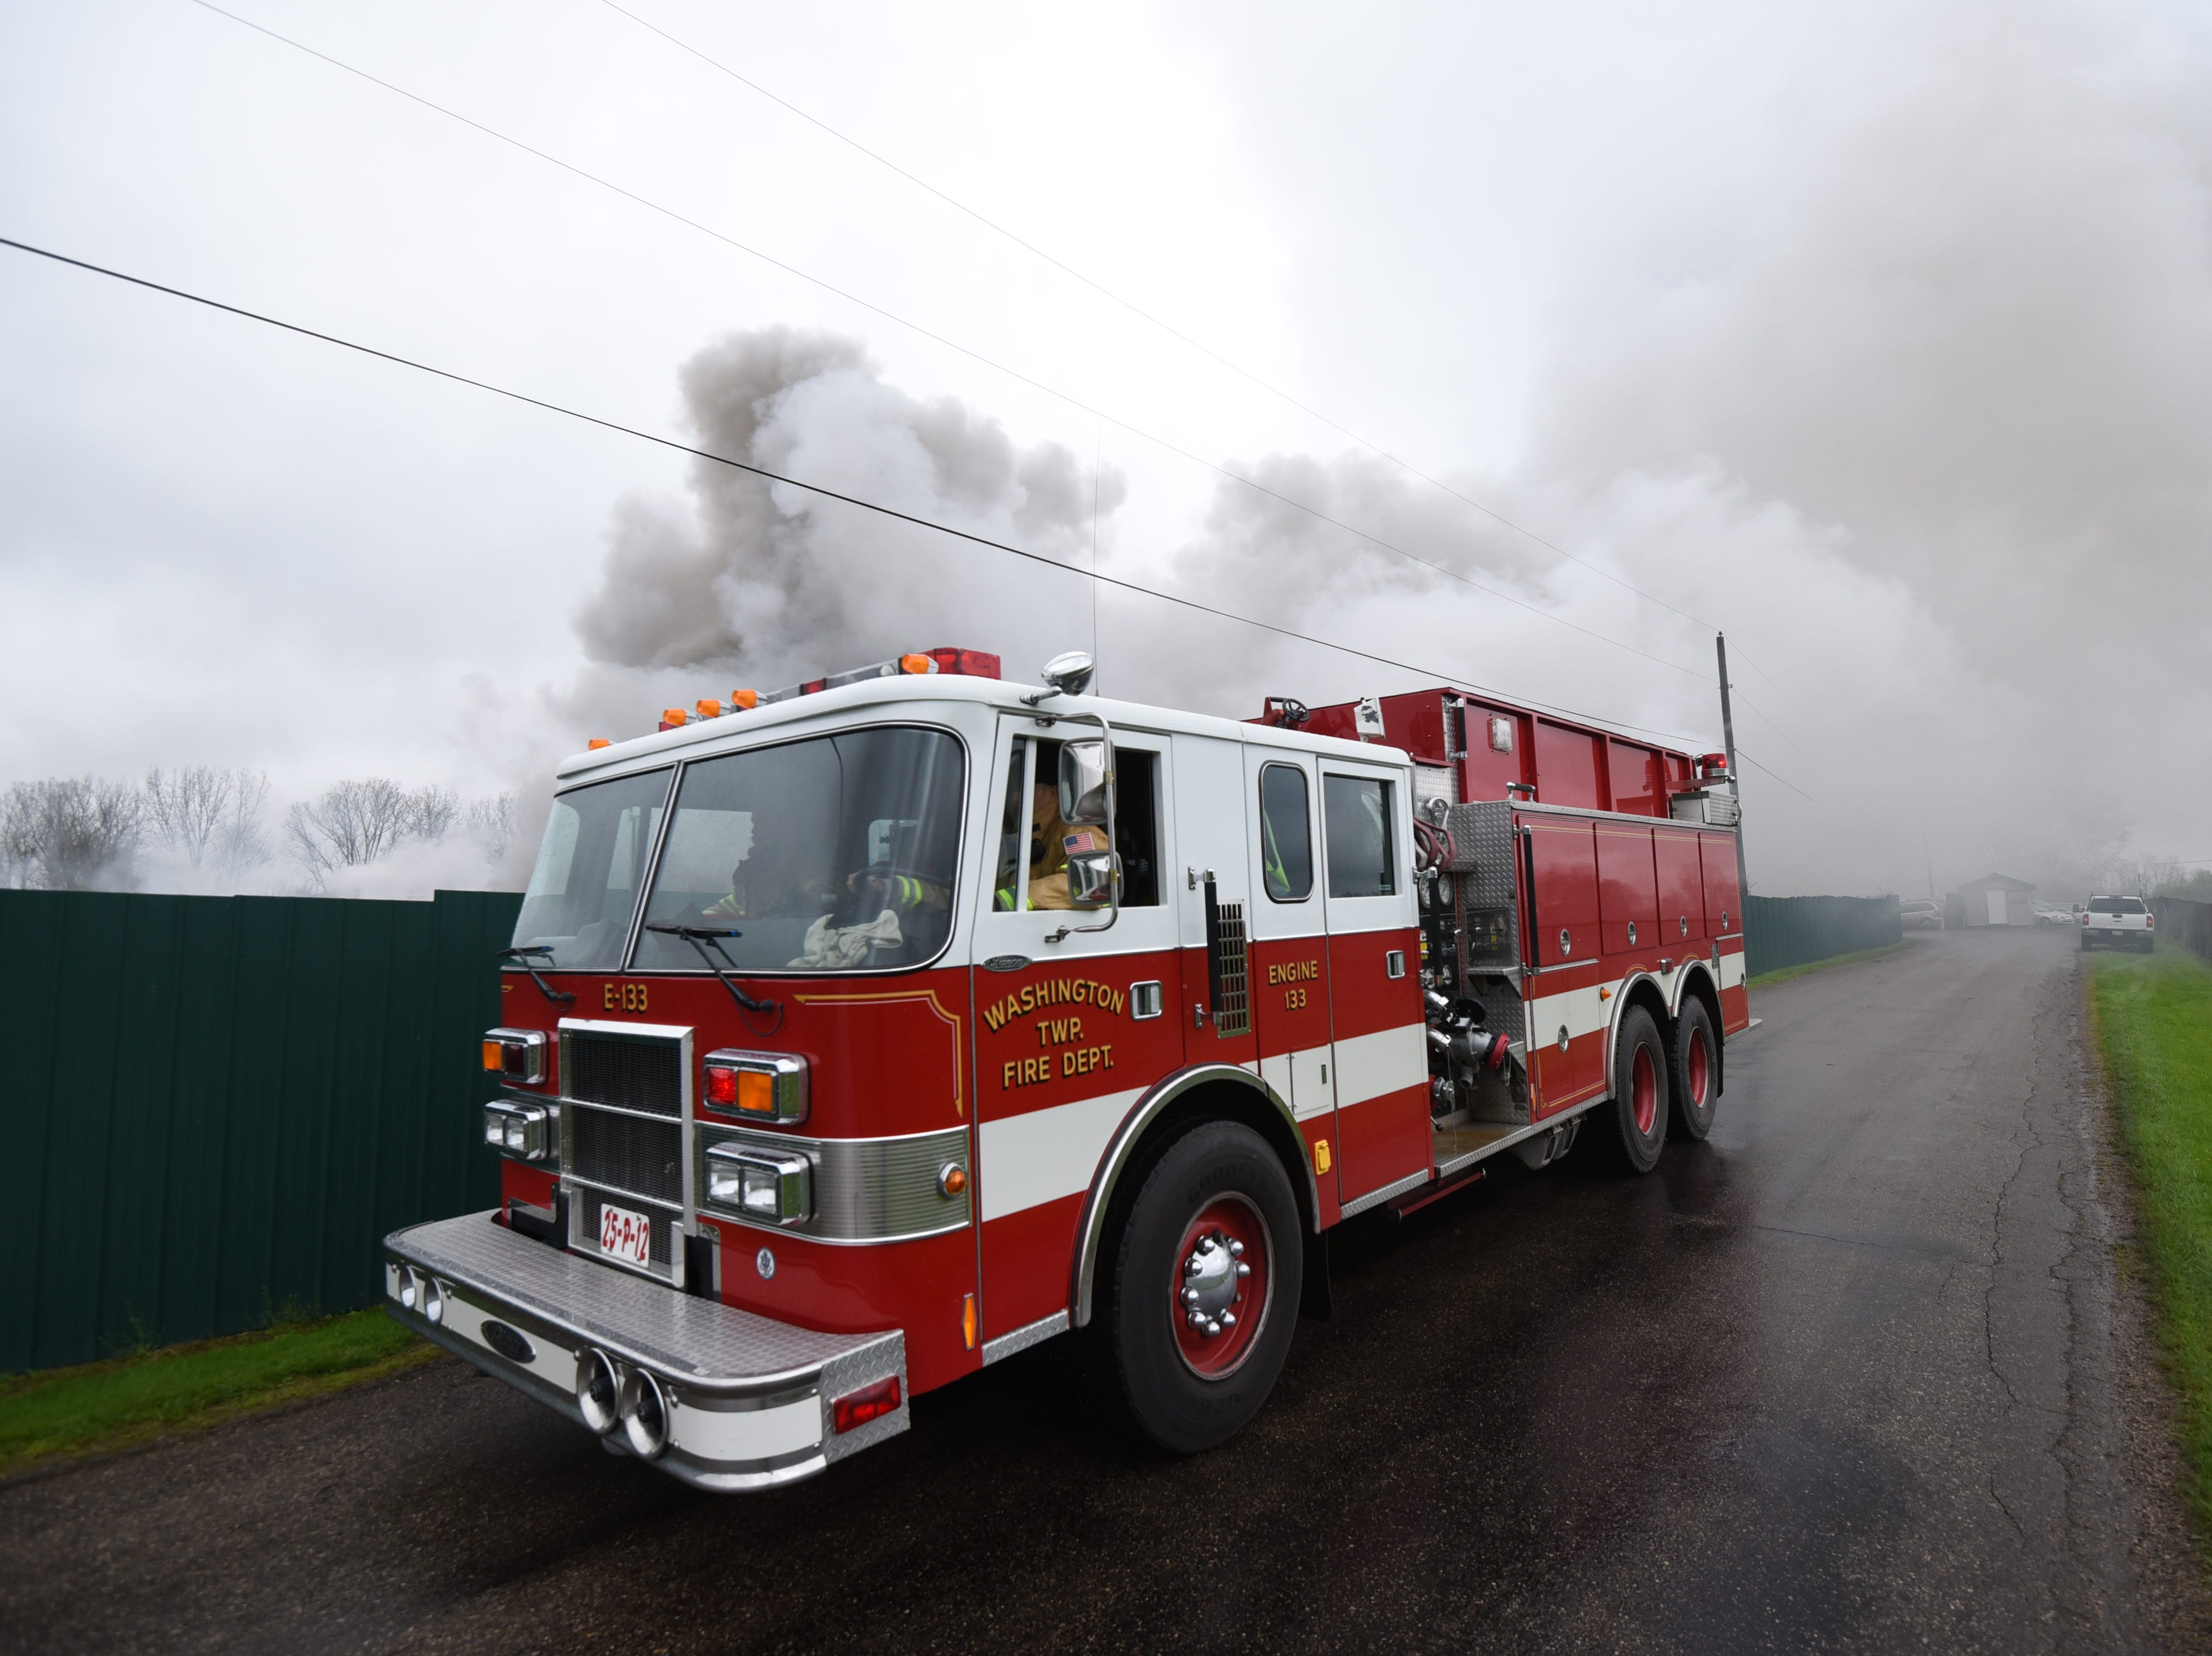 Firefighters battle a blaze Tuesday afternoon at Tucker Brothers Auto Wrecking on Hickory Lane.